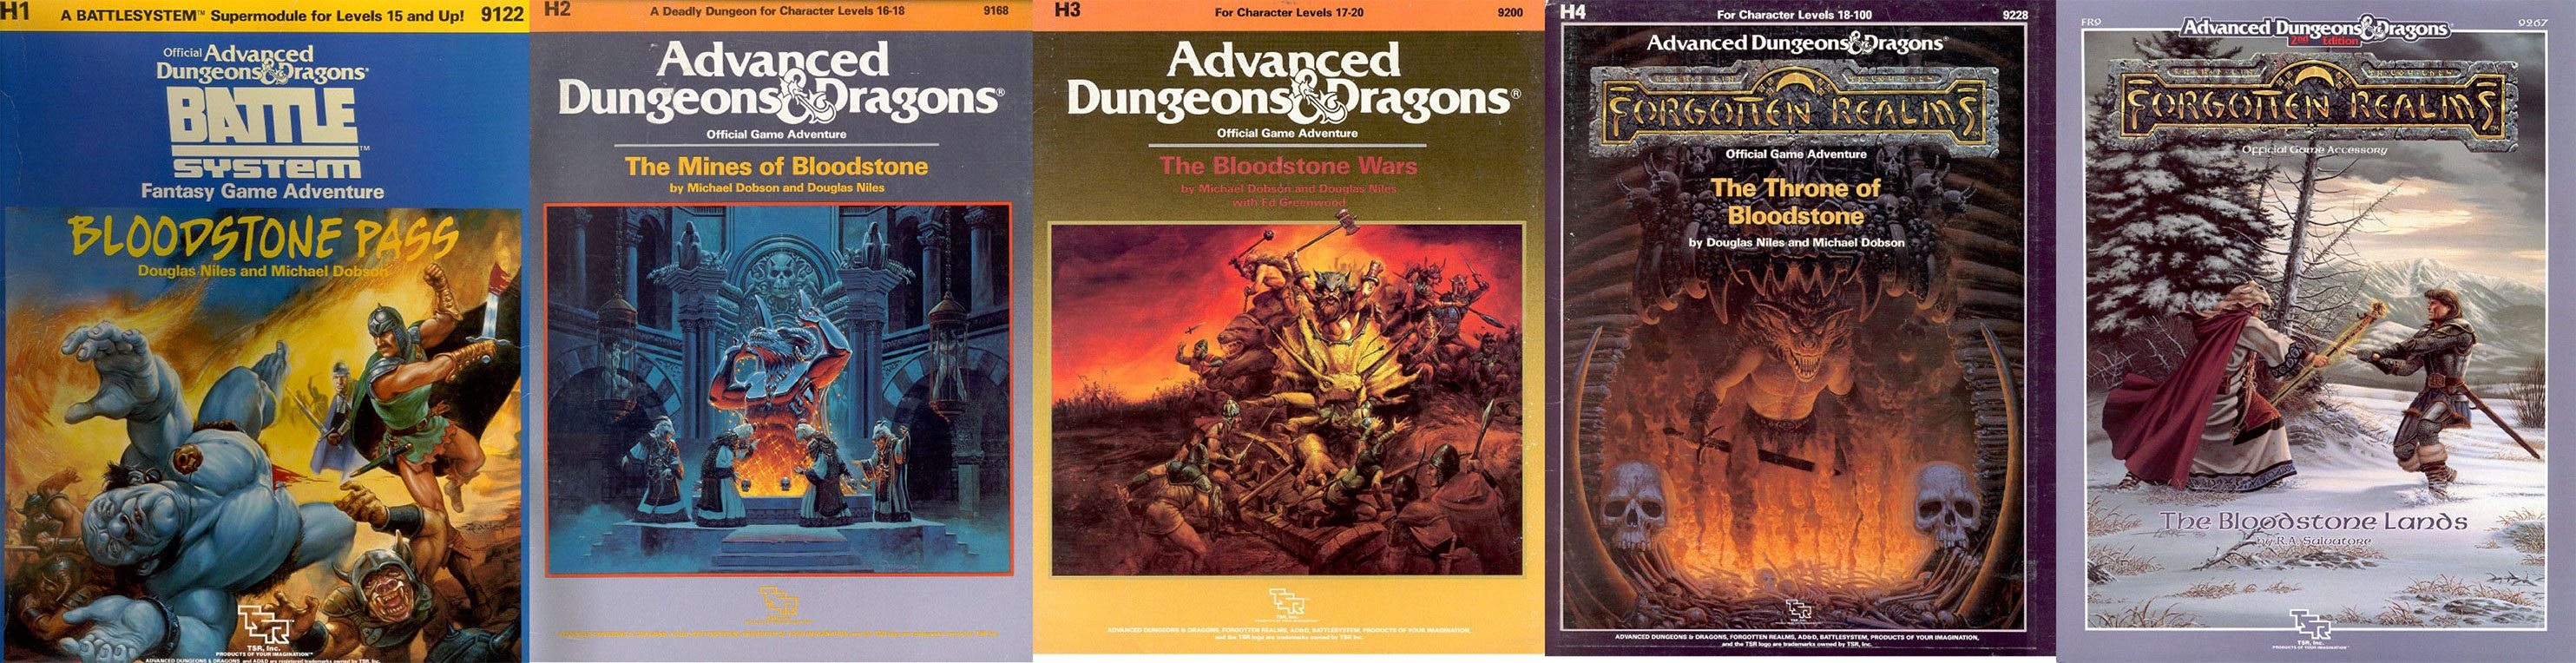 TSR 9122 H1 Bloodstone Pass and TSR 9168 H2 The Mines Of Bloodstone and TSR 9200 H3 The Bloodstone Wars and TSR 9228 H4 The Throne of Bloodstone and TSR 9267 FR9 The Bloodstone Lands Covers